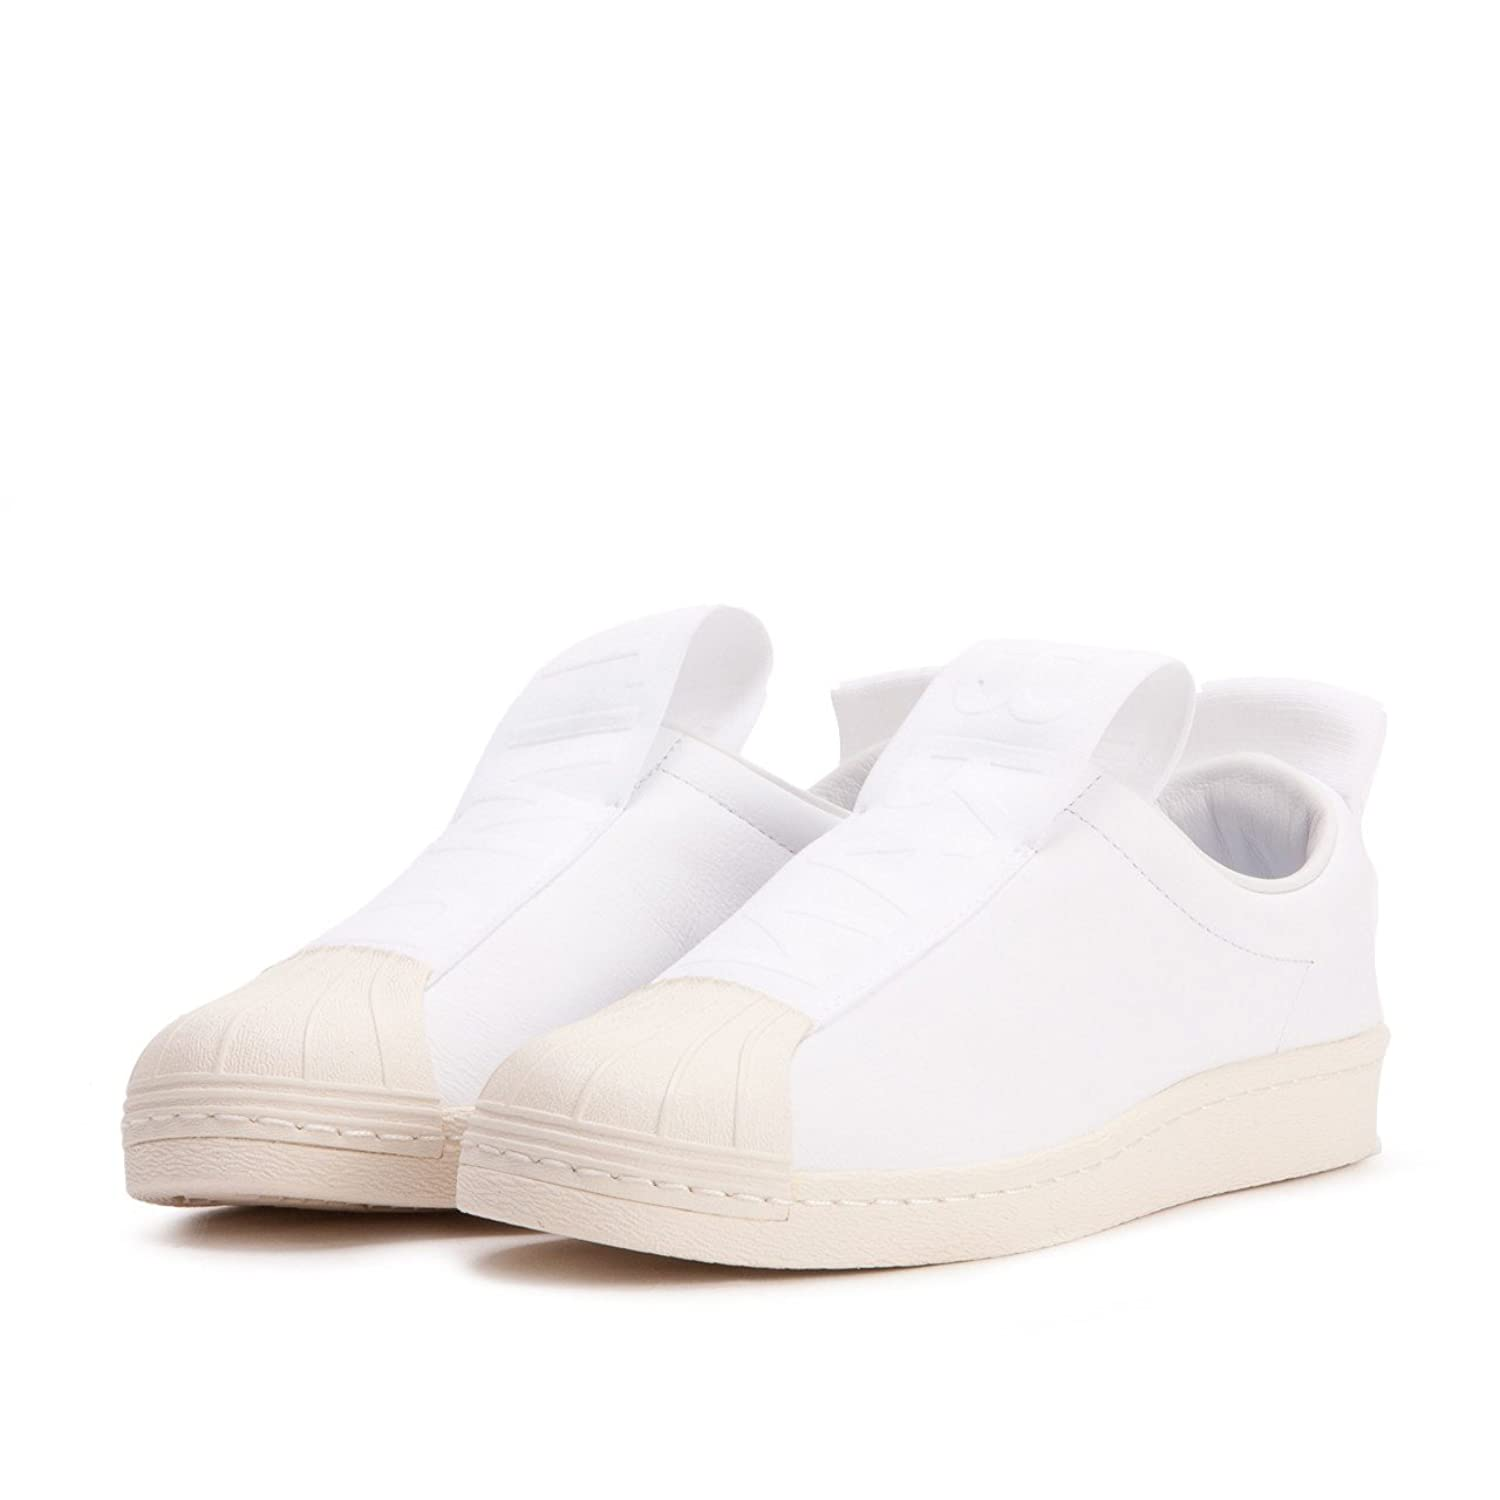 Amazon.com | adidas Originals Women's Superstar BW3S Slip-On Shoes BY9139 |  Loafers & Slip-Ons